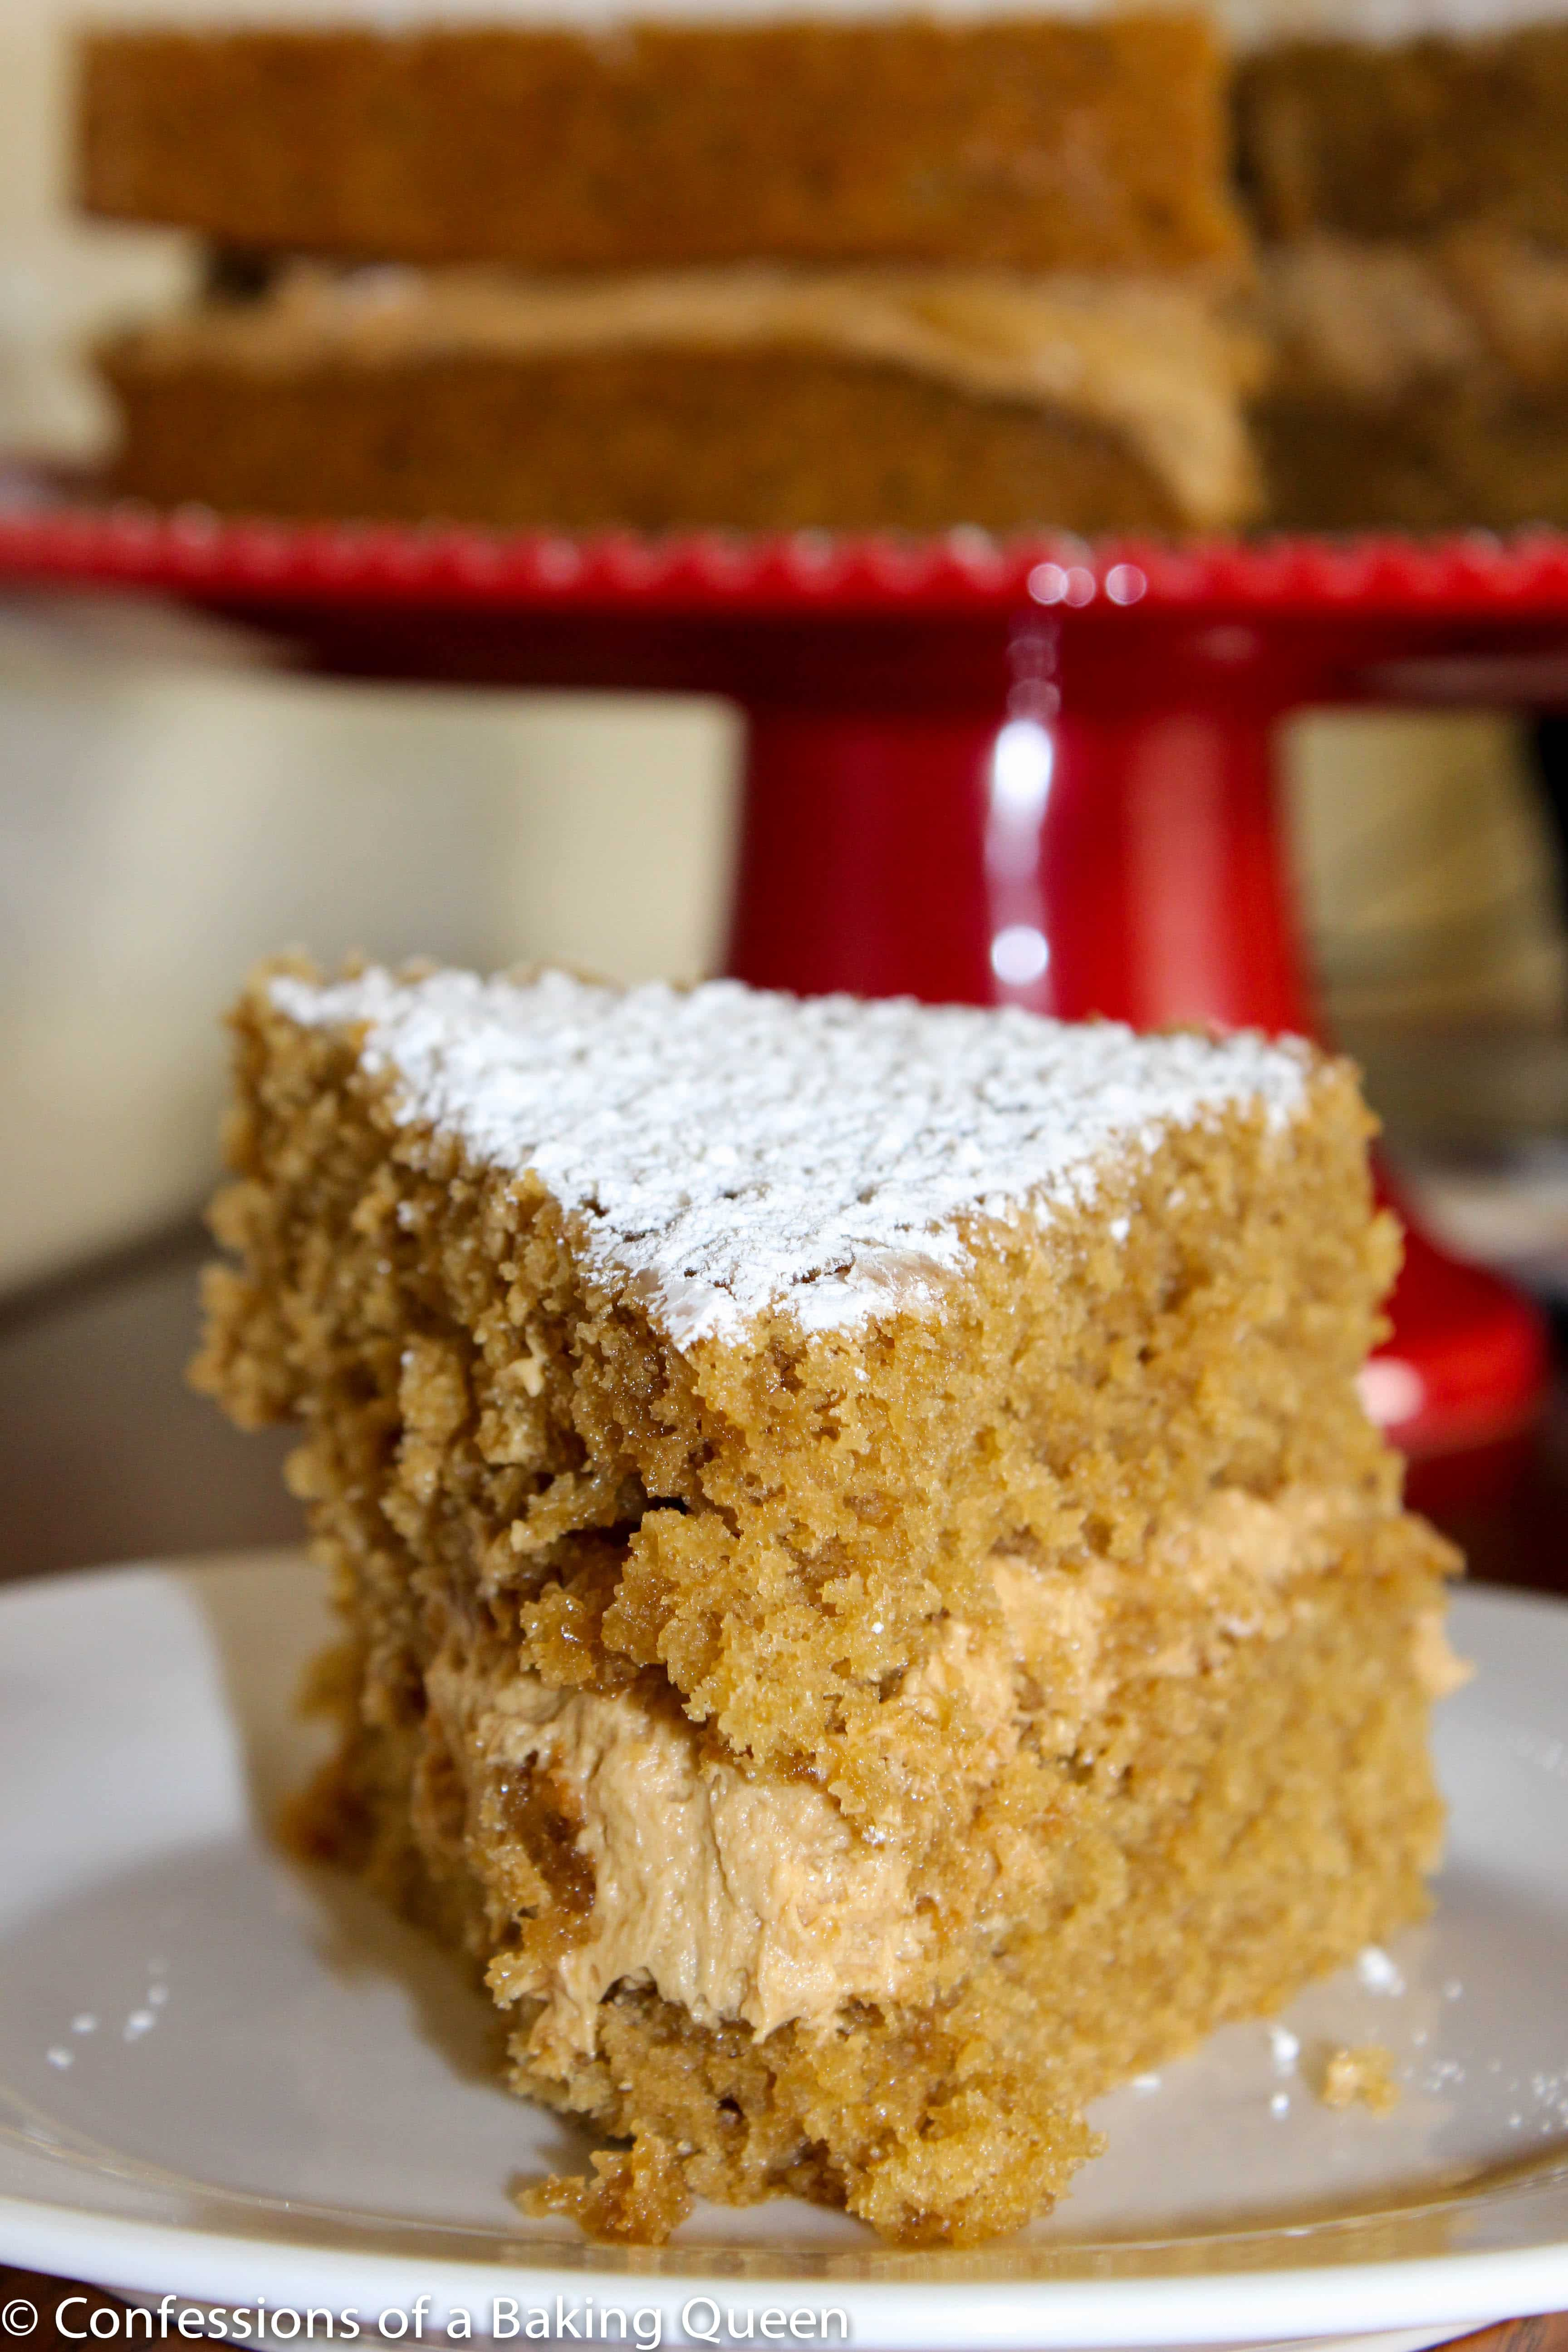 The Best Coffee Cake - Confessions of a Baking Queen